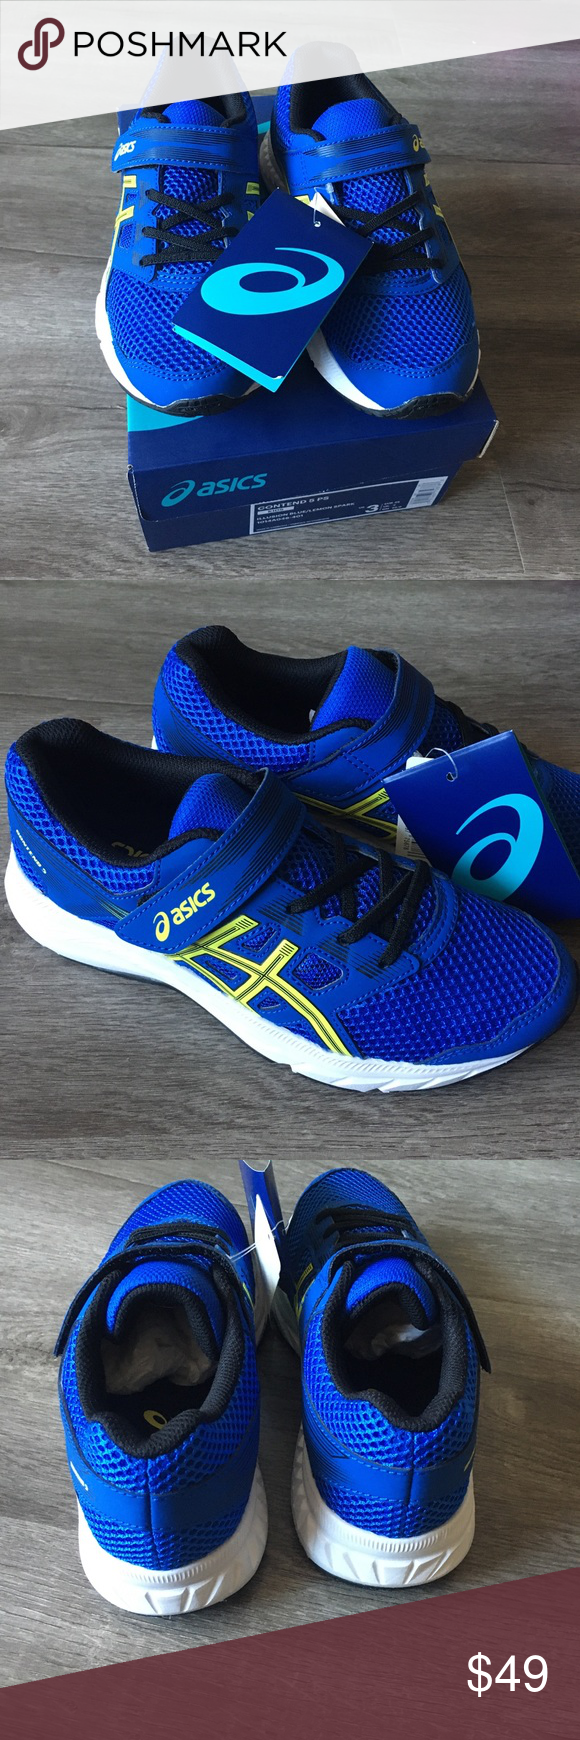 ASICS Kids size 3 shoes New in box in